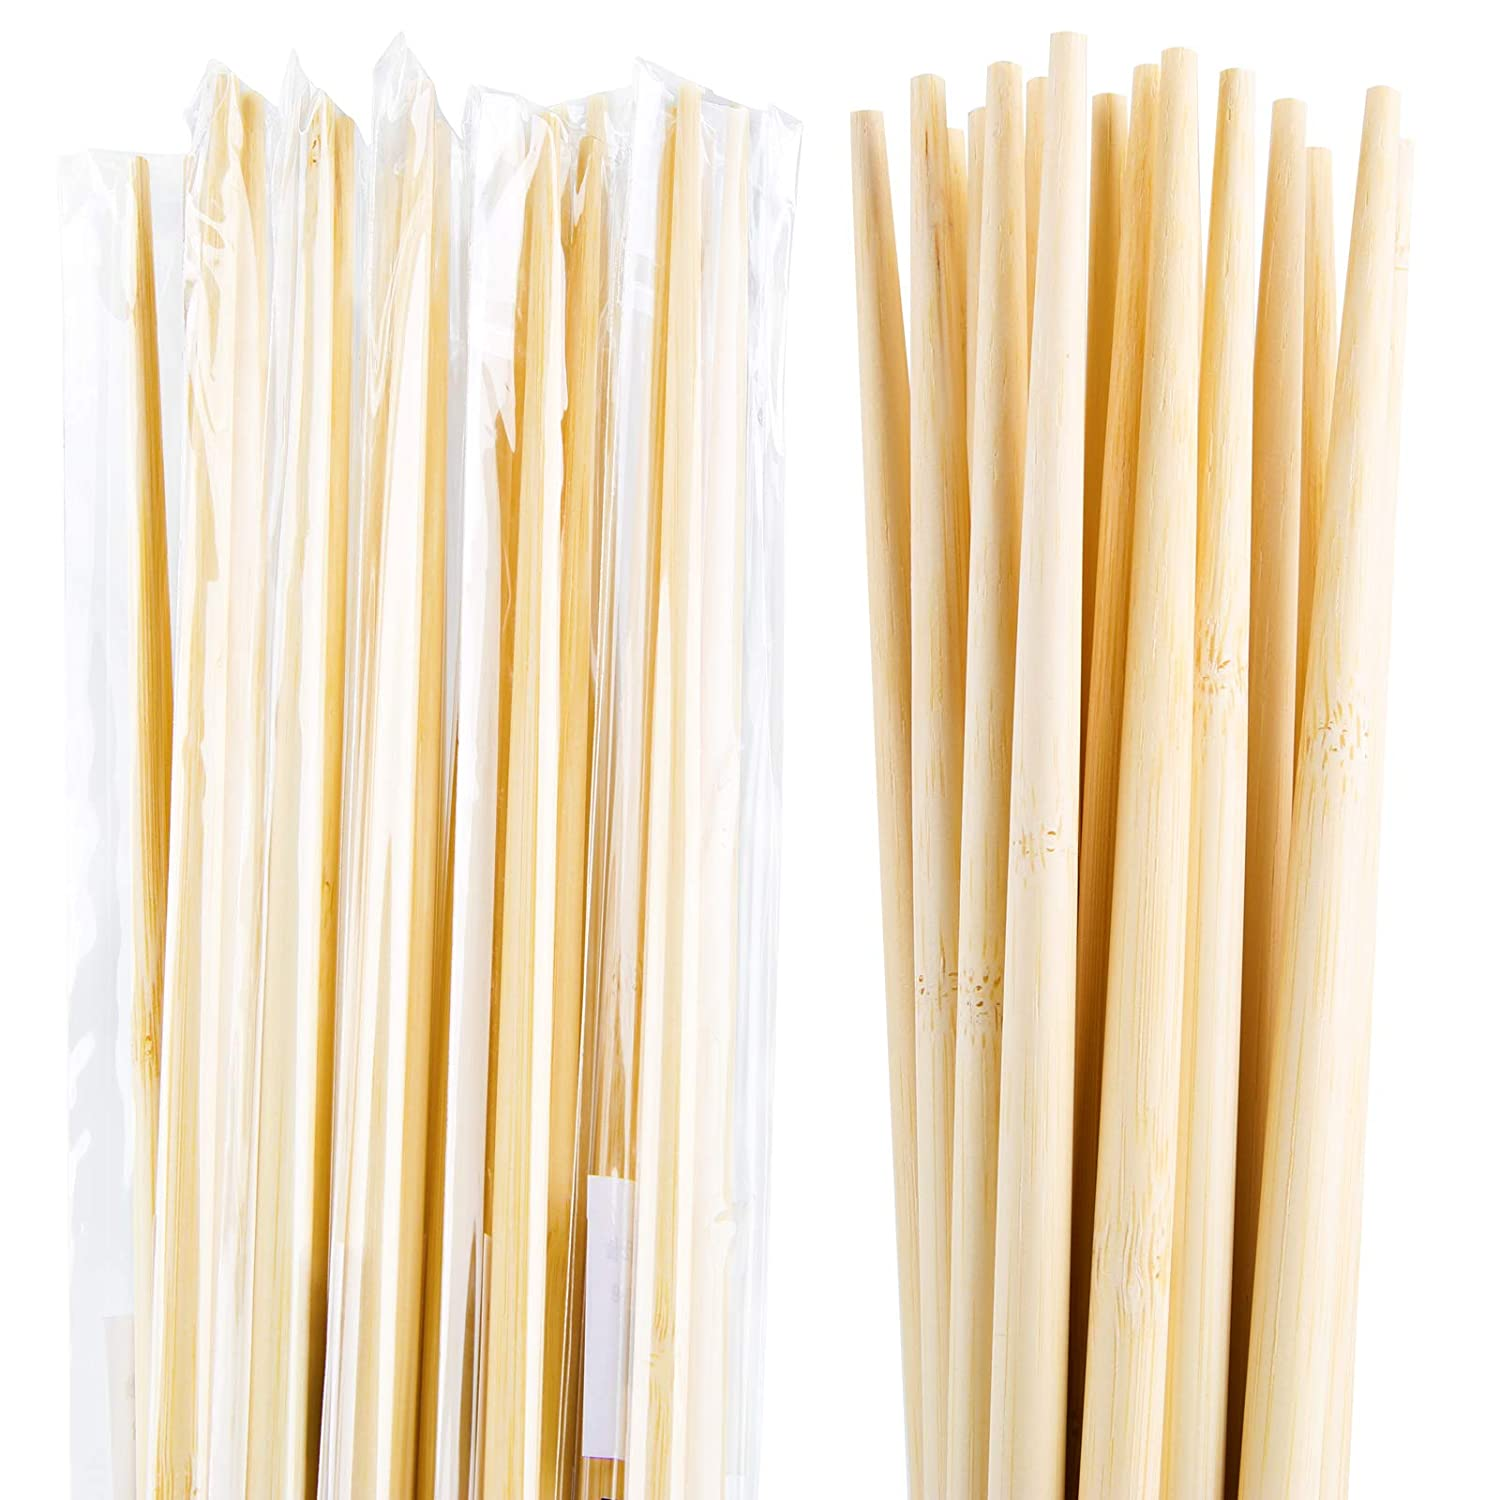 Individually Wrapped 10 Pairs 15 Inches Eco Friendly Bamboo Chopsticks for Cooking and Hot Pot